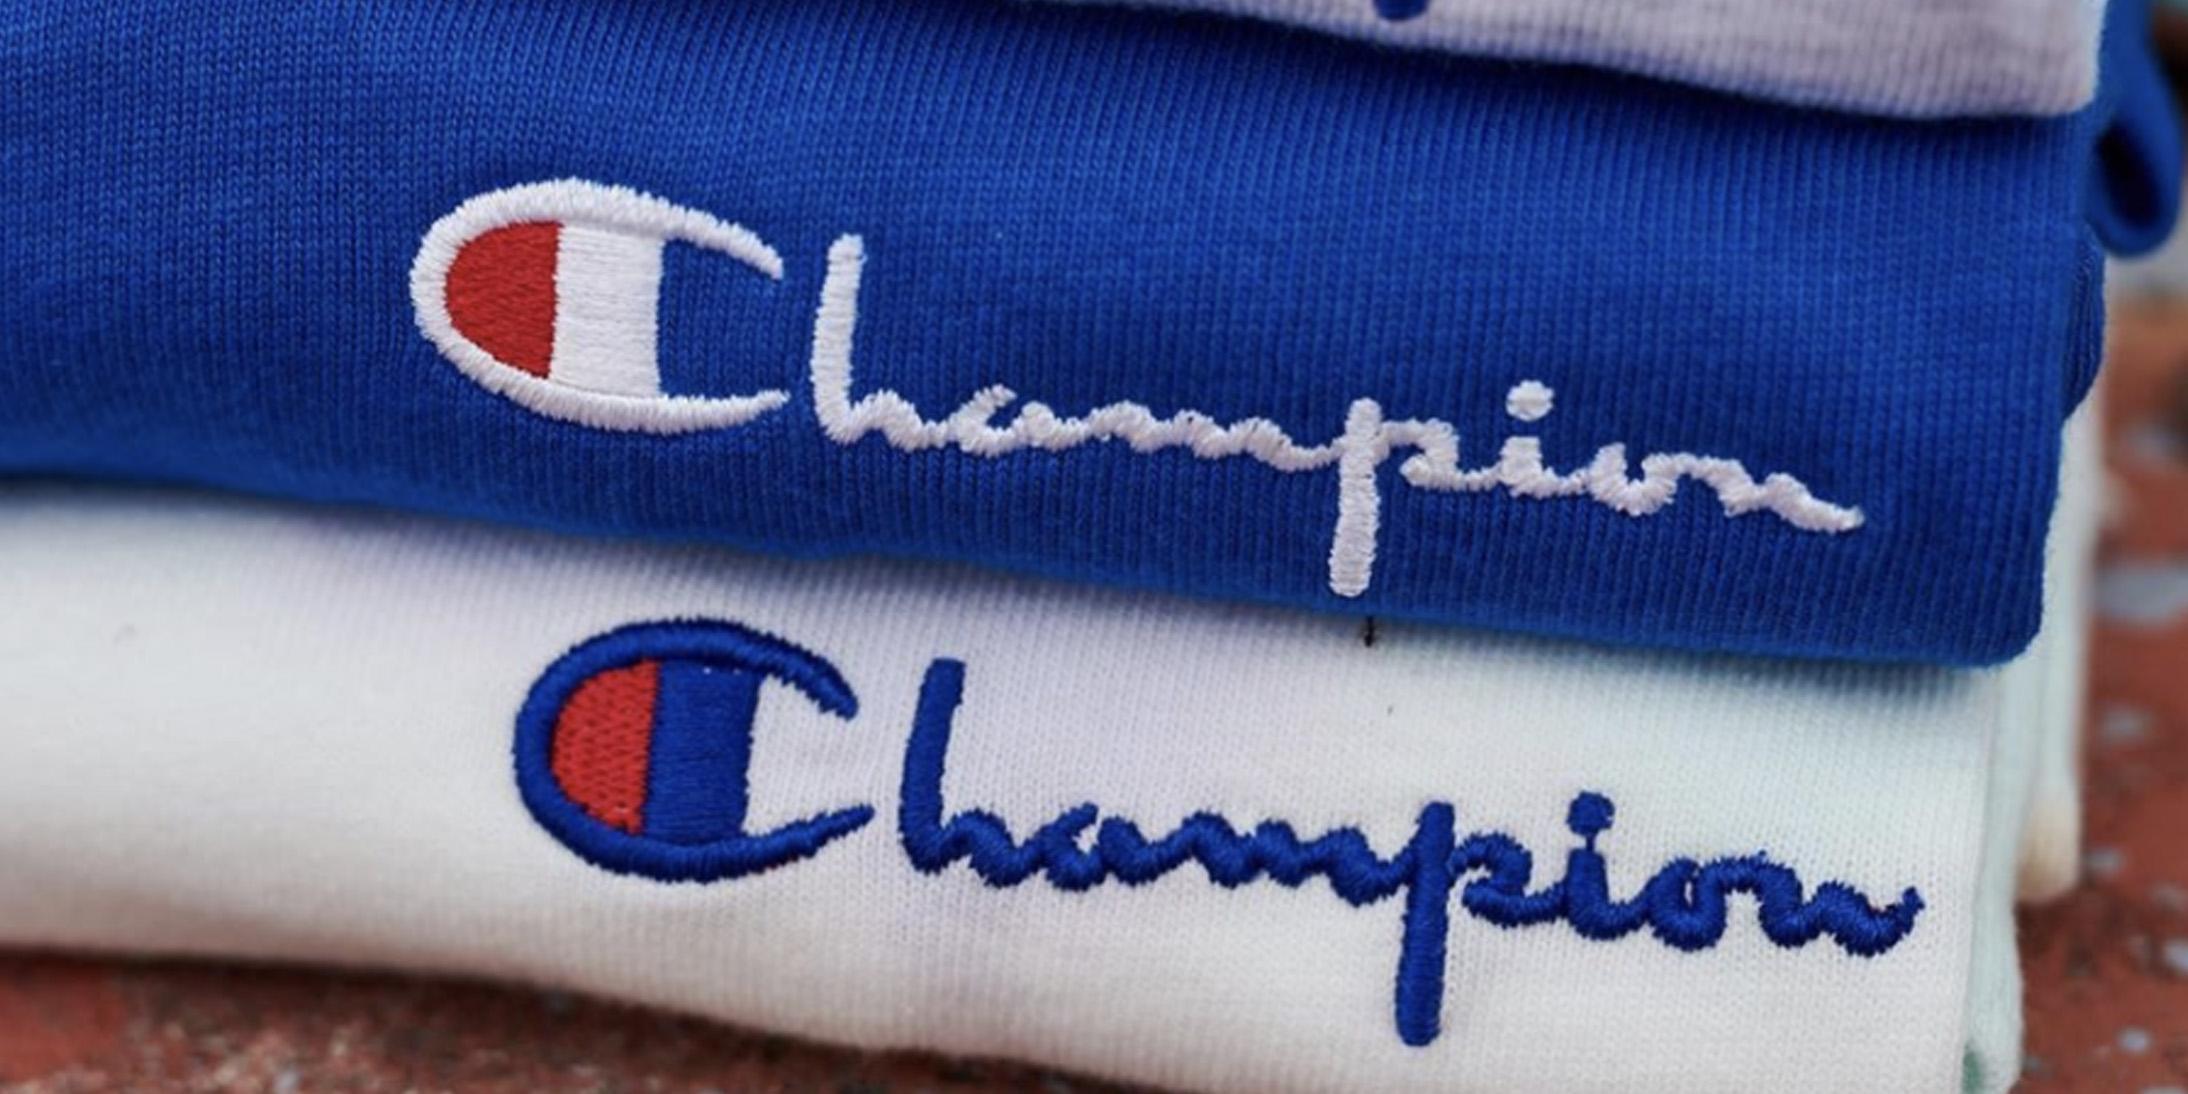 Champion, Jockey, more from $6 Prime Shipped at Amazon ...